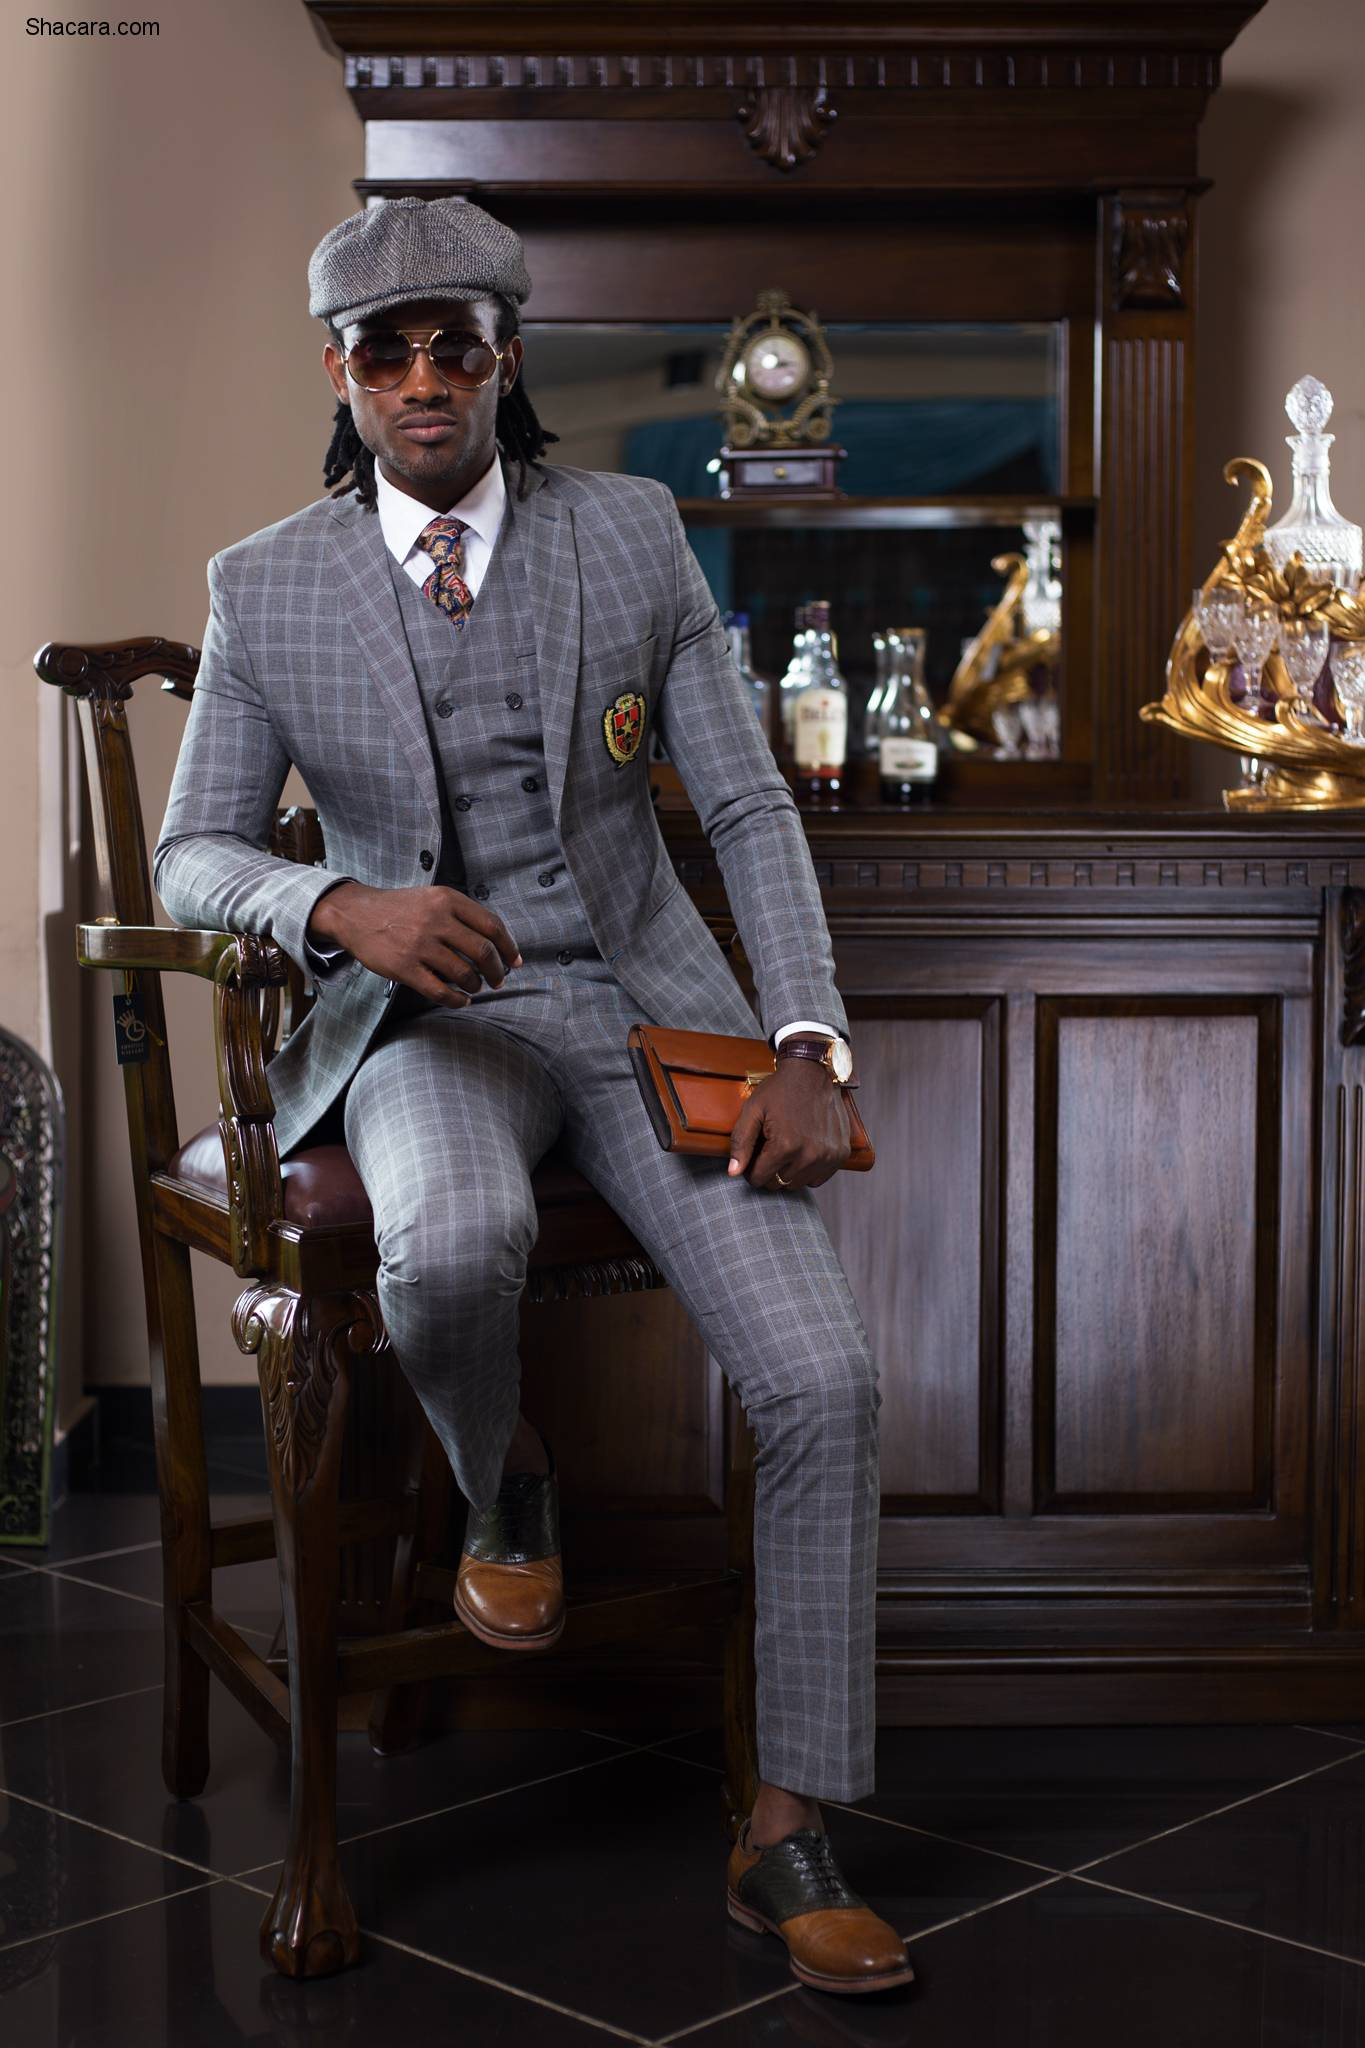 Abrantie The Gentleman Presents The Look Book For The 'G'Man' Collection